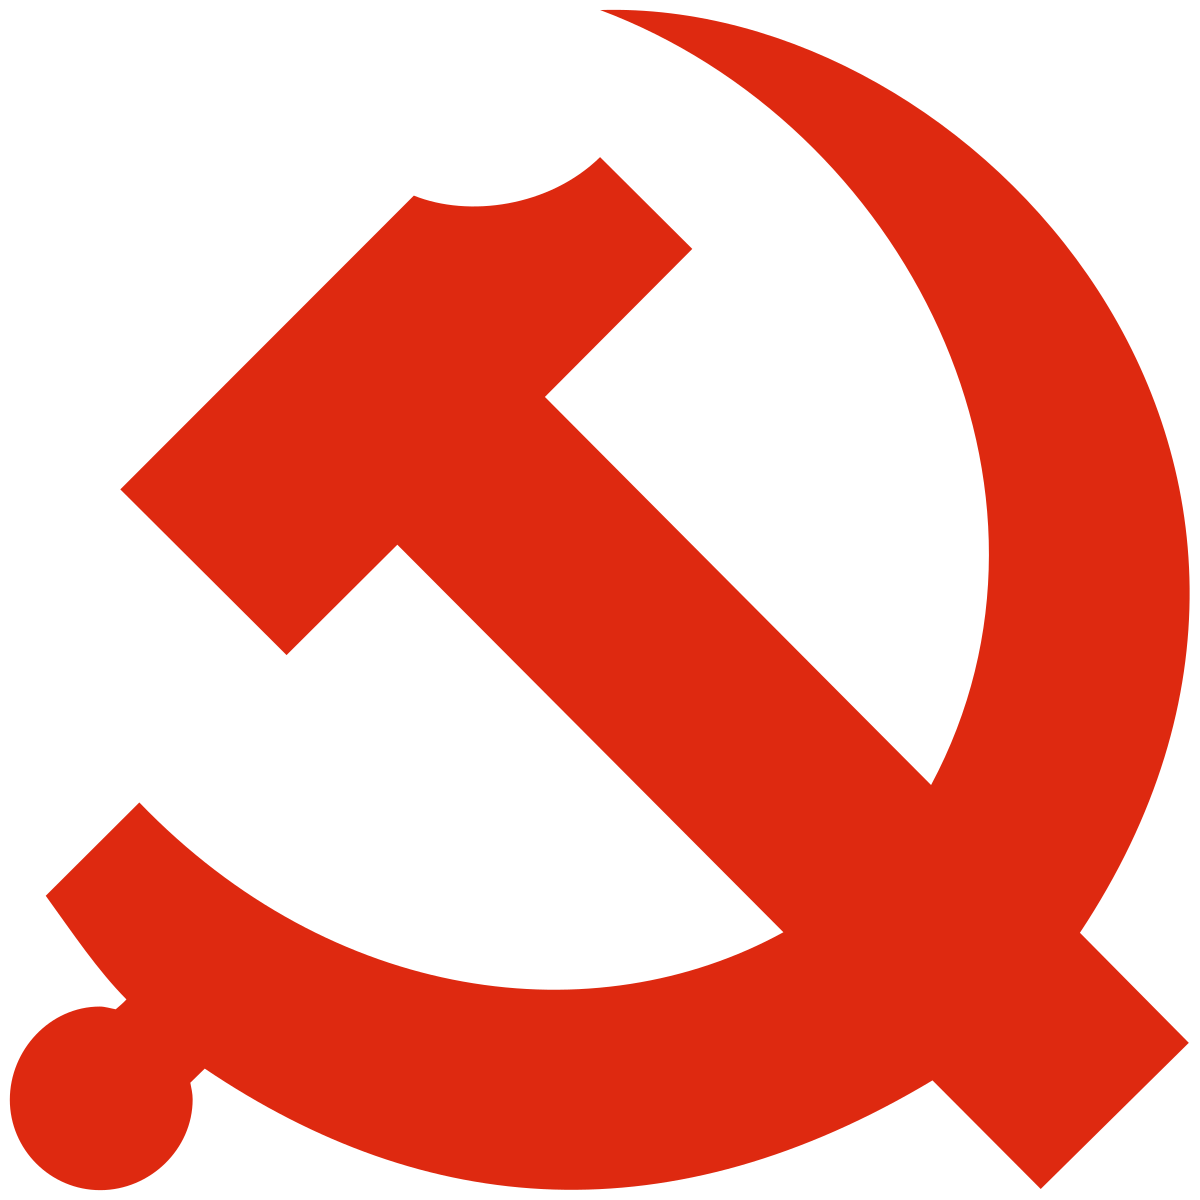 Communist party of china. Clipart definition current situation